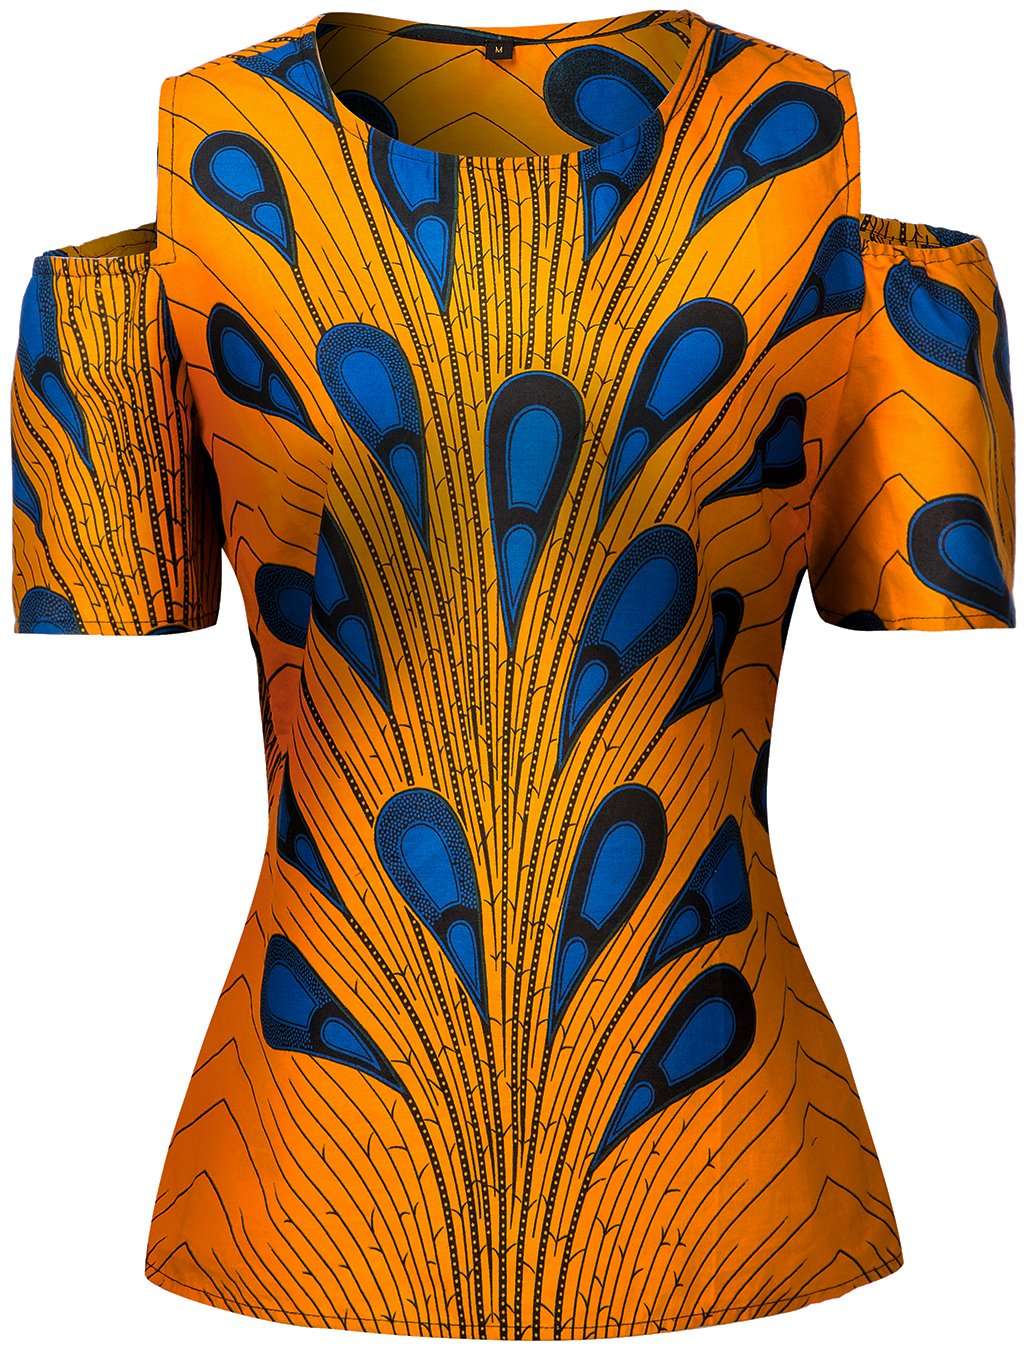 Shenbolen Women African Print Shirt Slim Fit Clubwear Party Shirt Blouse Top(A,X-Large)